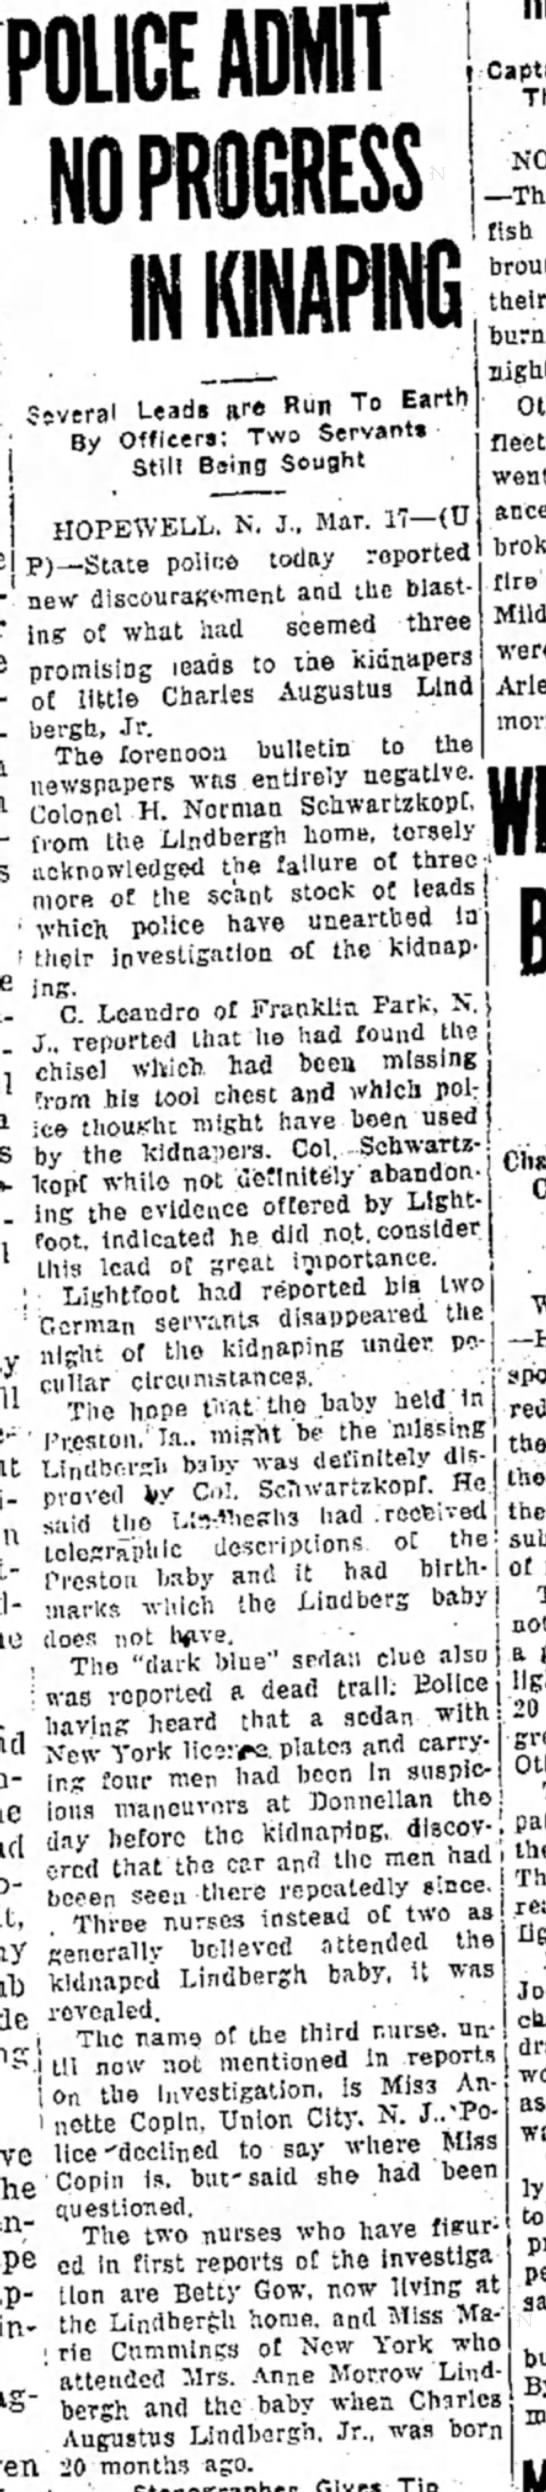 Annette Copin Lindbergh Baby Nurse - POLICE ADMIT NO PROGRESS s . vc ral Leads are...